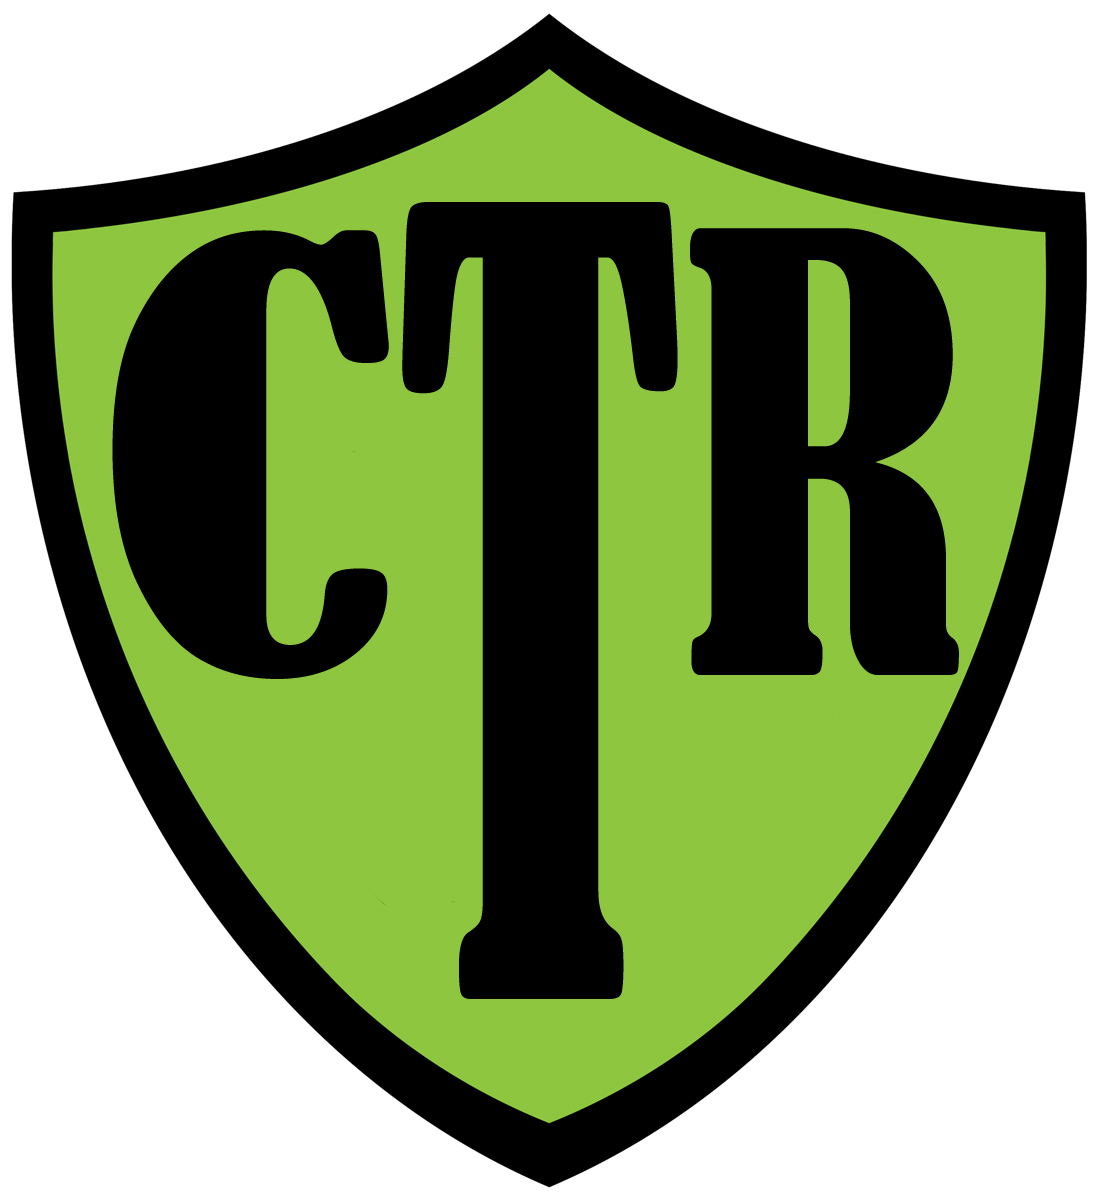 Free Ctr Shield Cliparts, Download Free Clip Art, Free Clip.